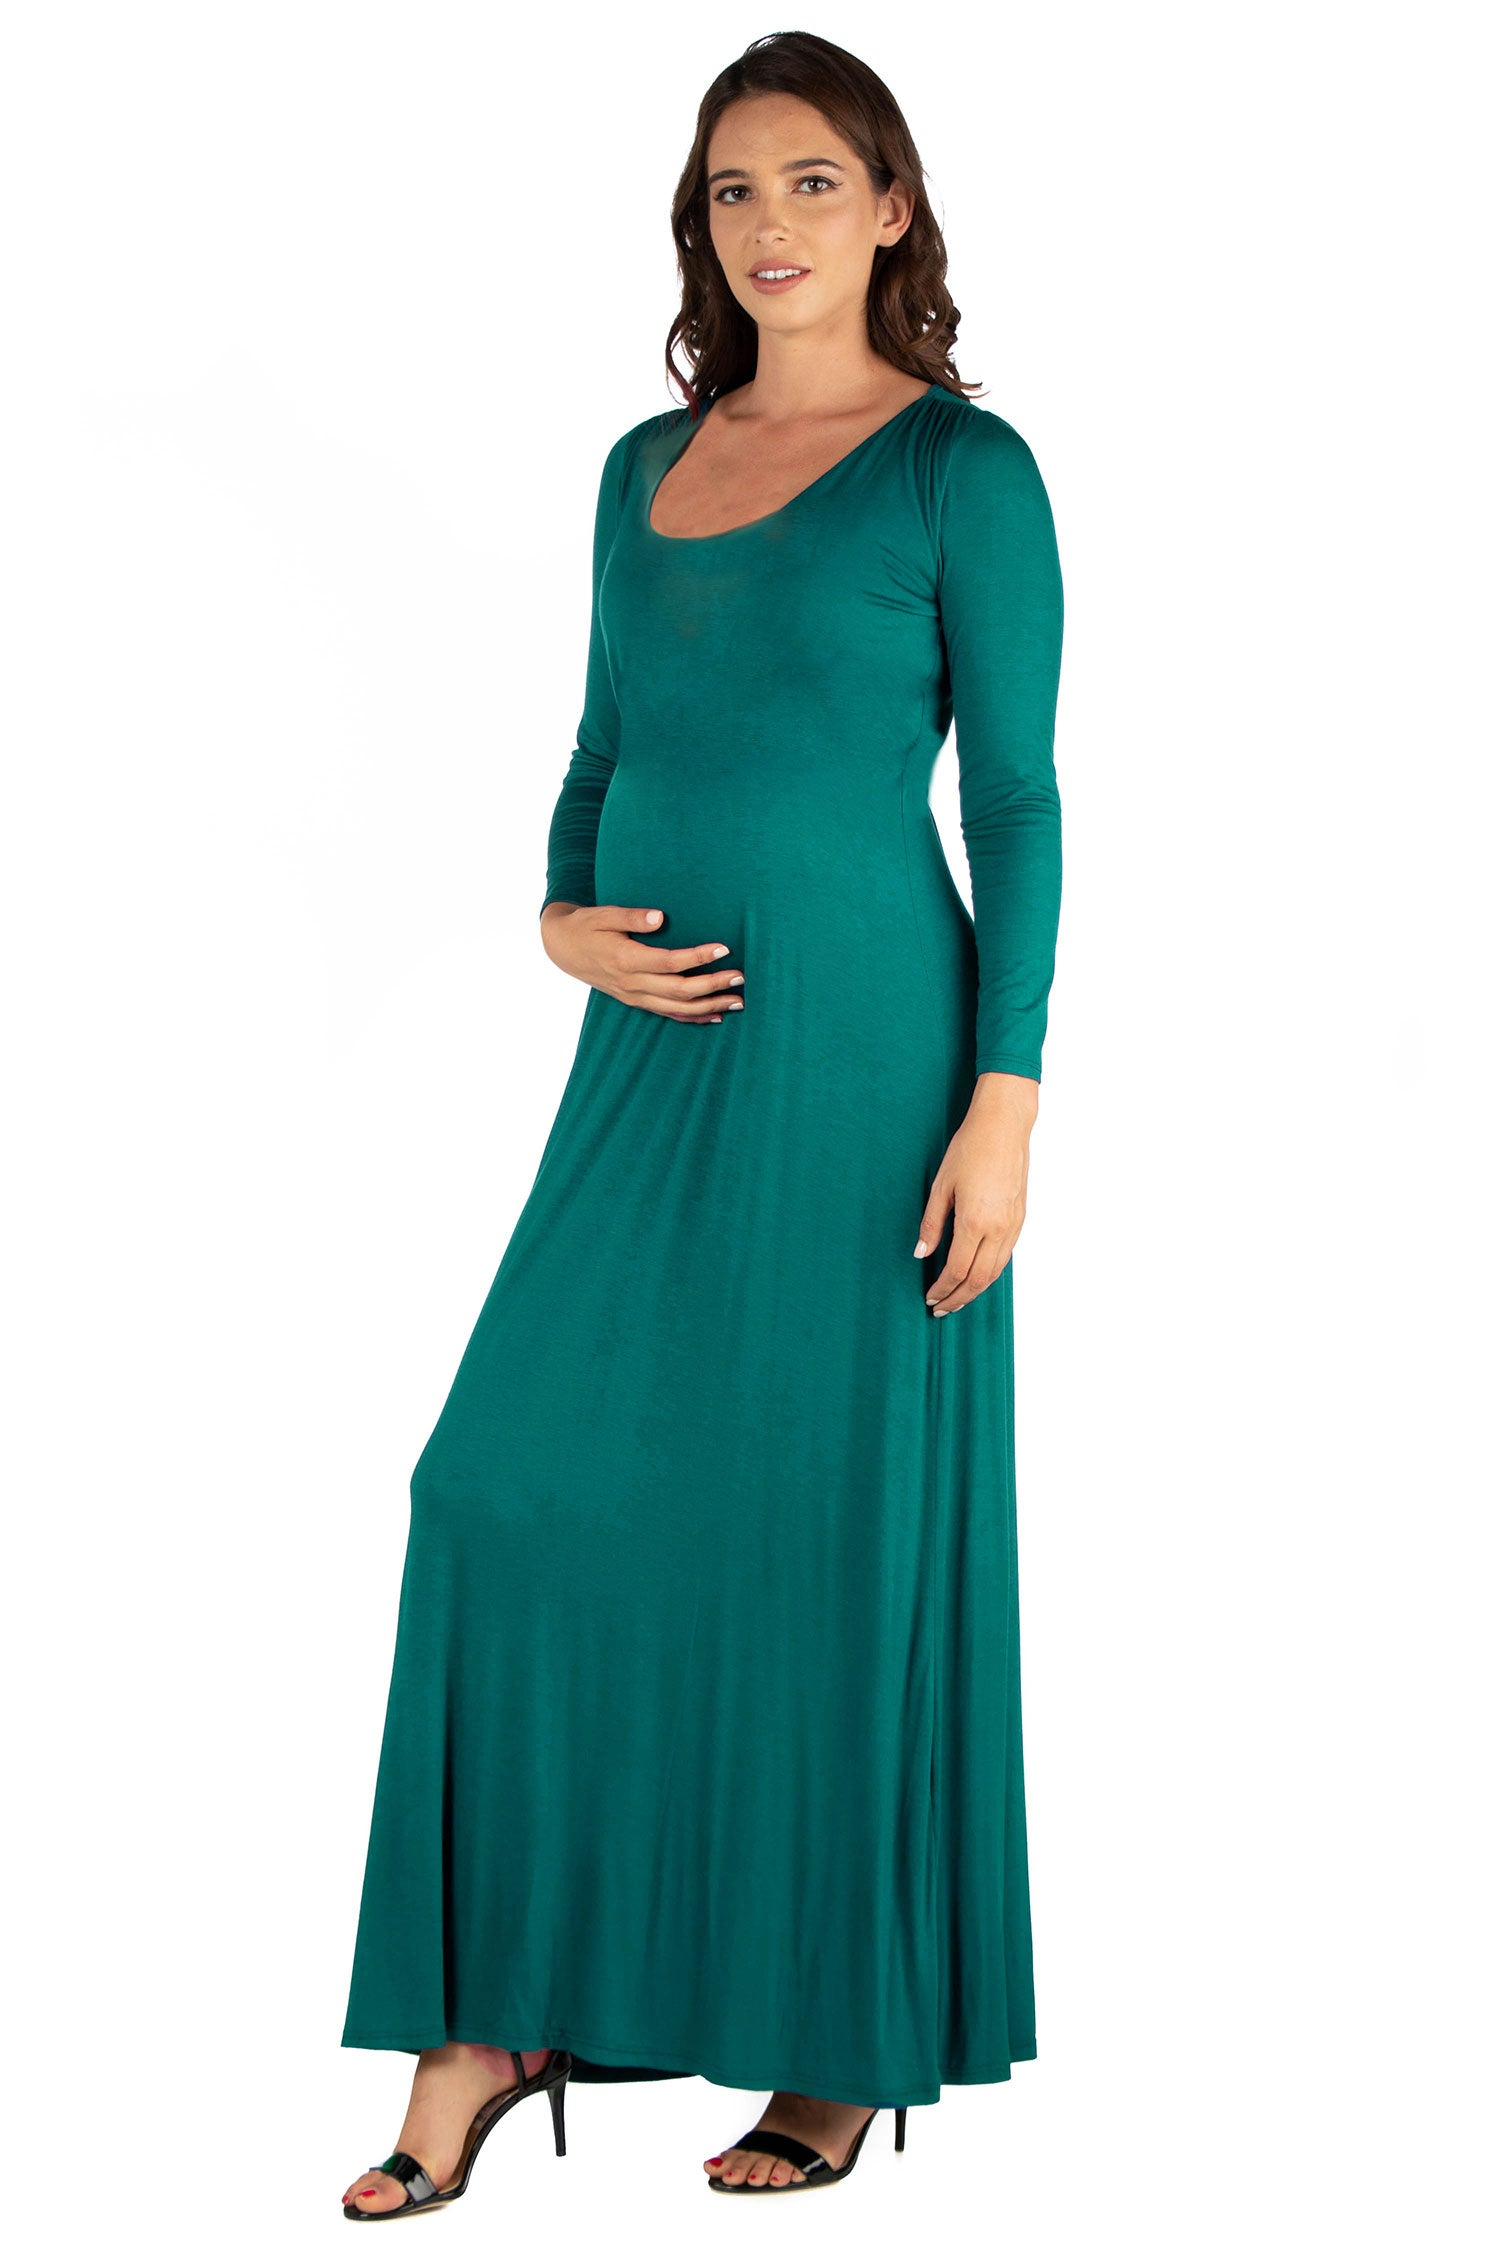 24seven Comfort Apparel Long Sleeve Maternity Maxi Dress-DRESSES-24Seven Comfort Apparel-FOREST-1X-24/7 Comfort Apparel